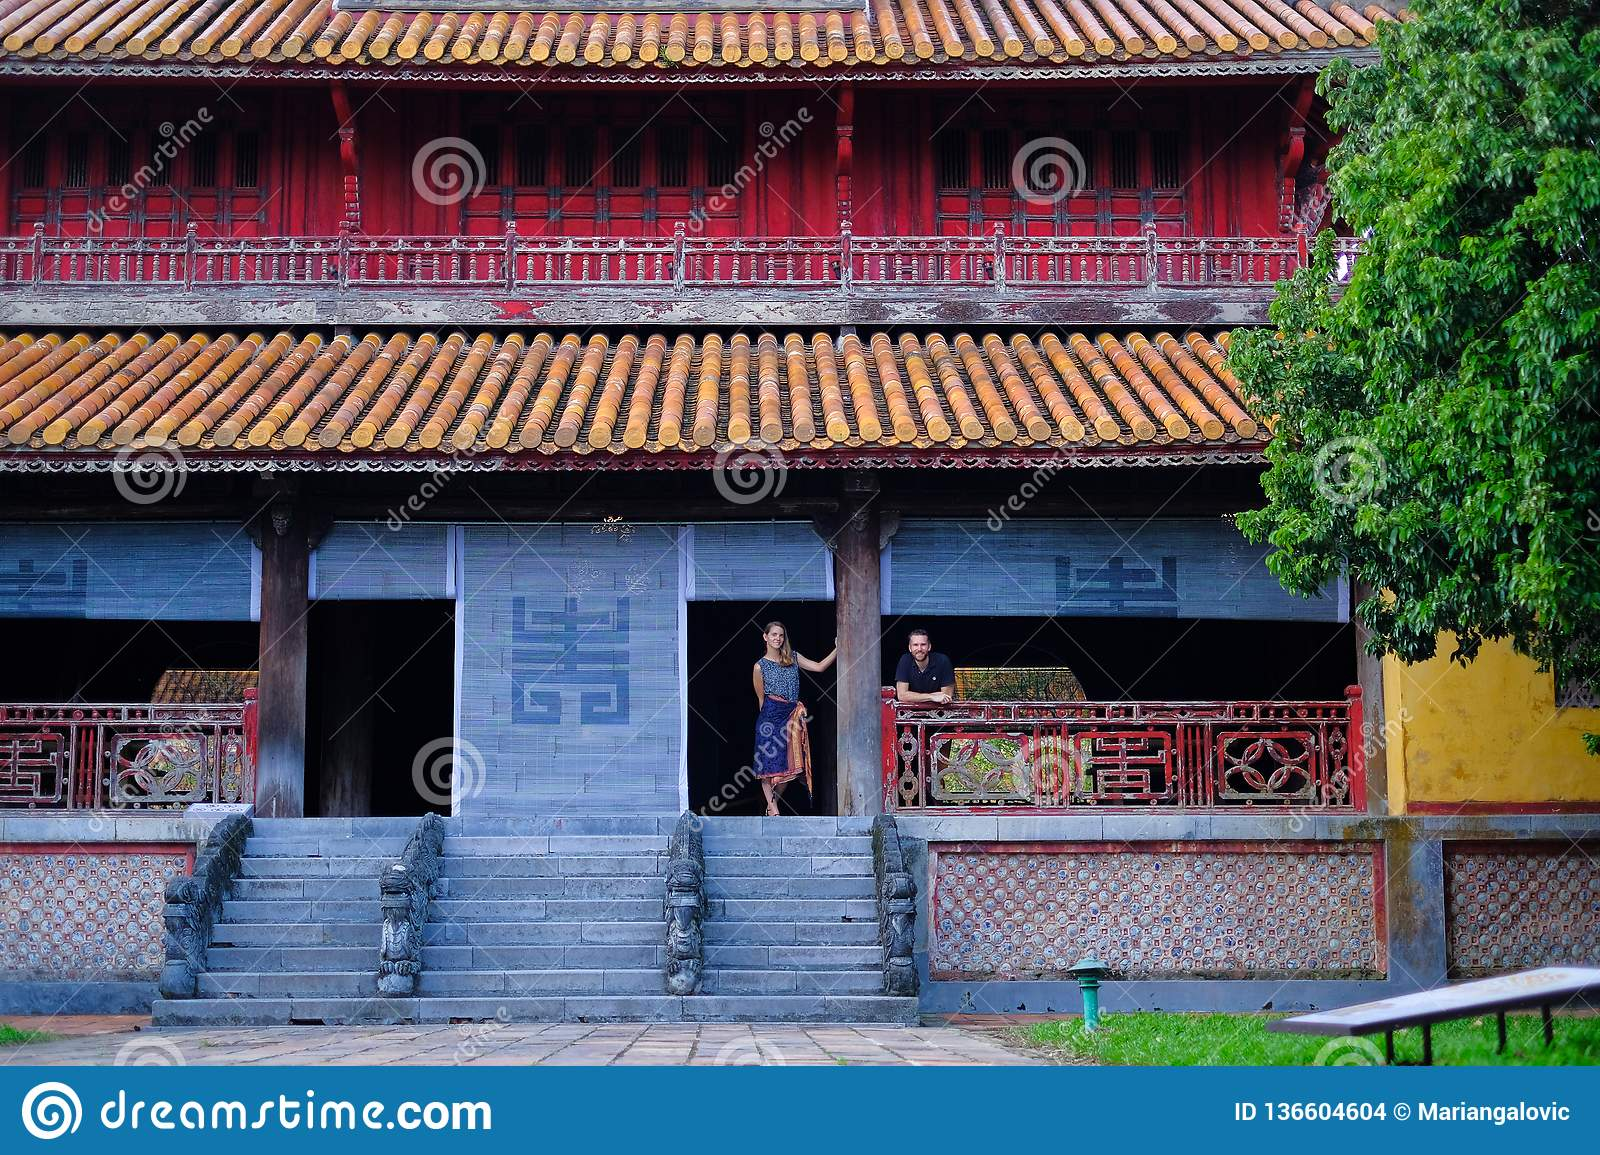 Hue / Vietnam, 17/11/2017: Couple standing inside a traditional house with ornamental tiled roof in the Citadel of Hue, Vietnam